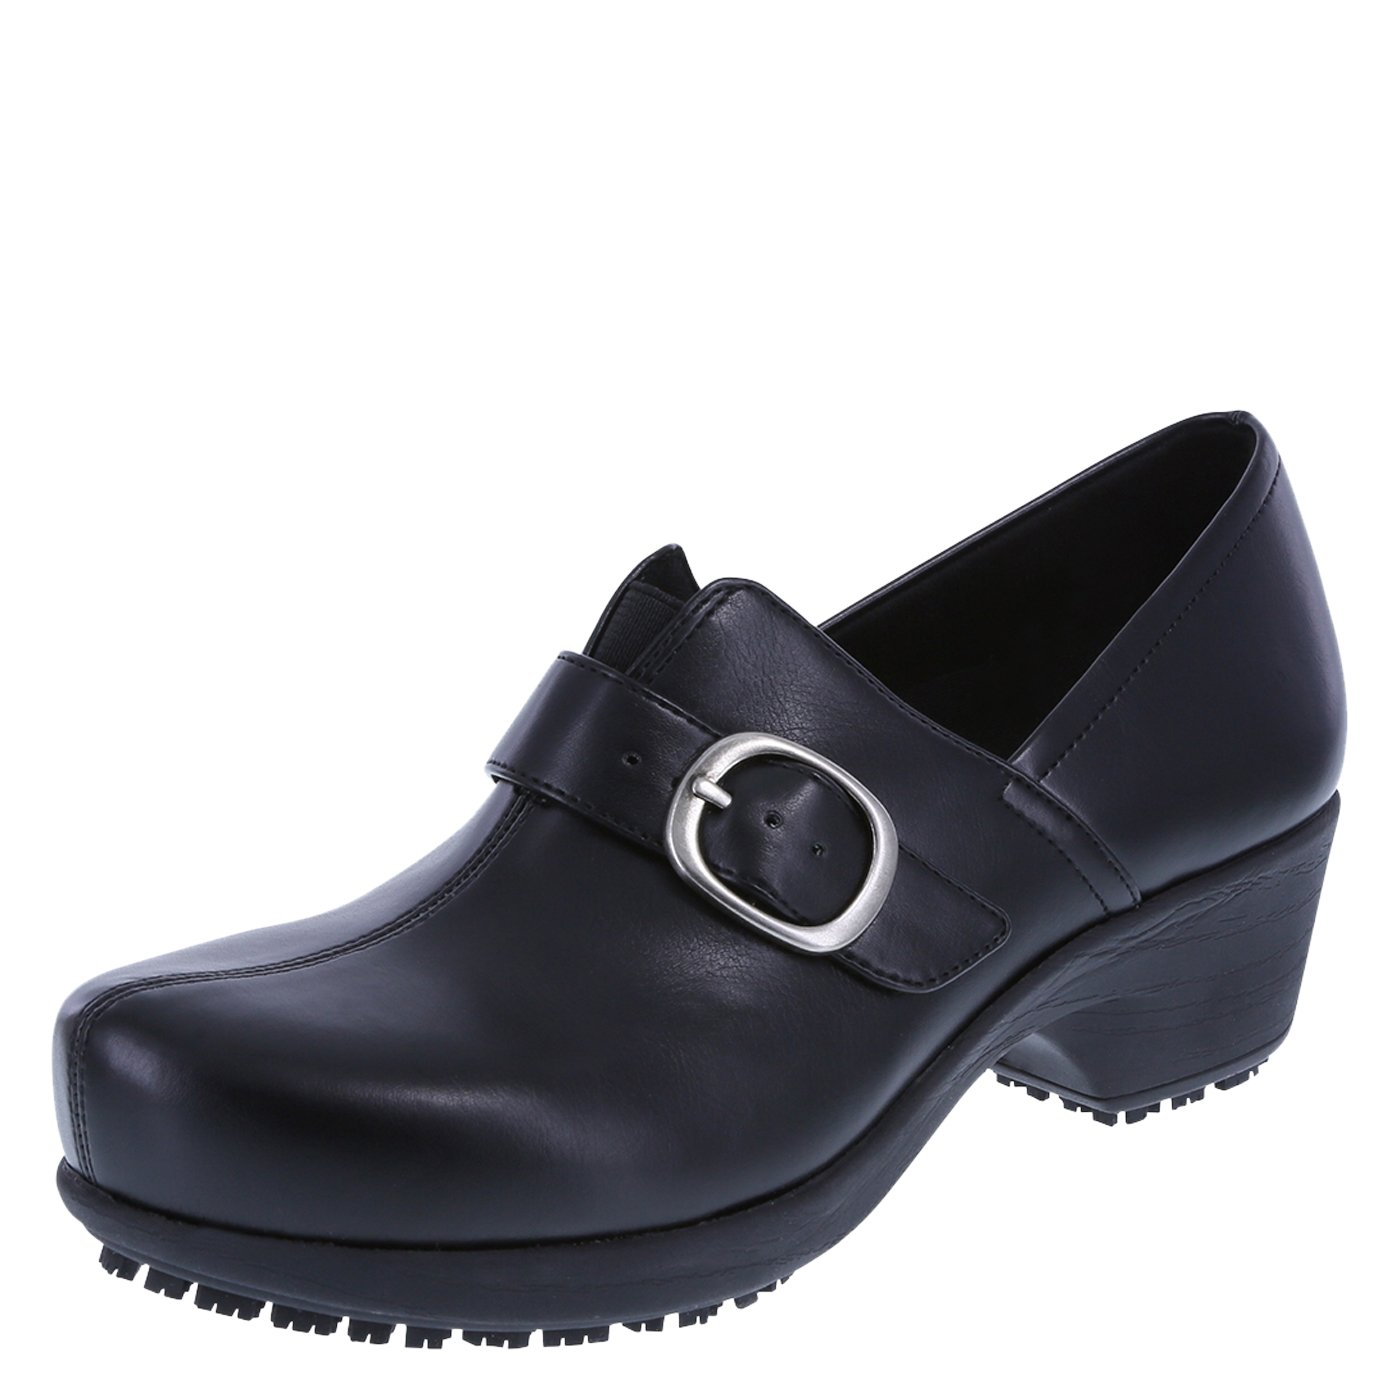 safeTstep Slip Resistant Women's Black Women's Buckle Gretchen Clog 8.5 Regular